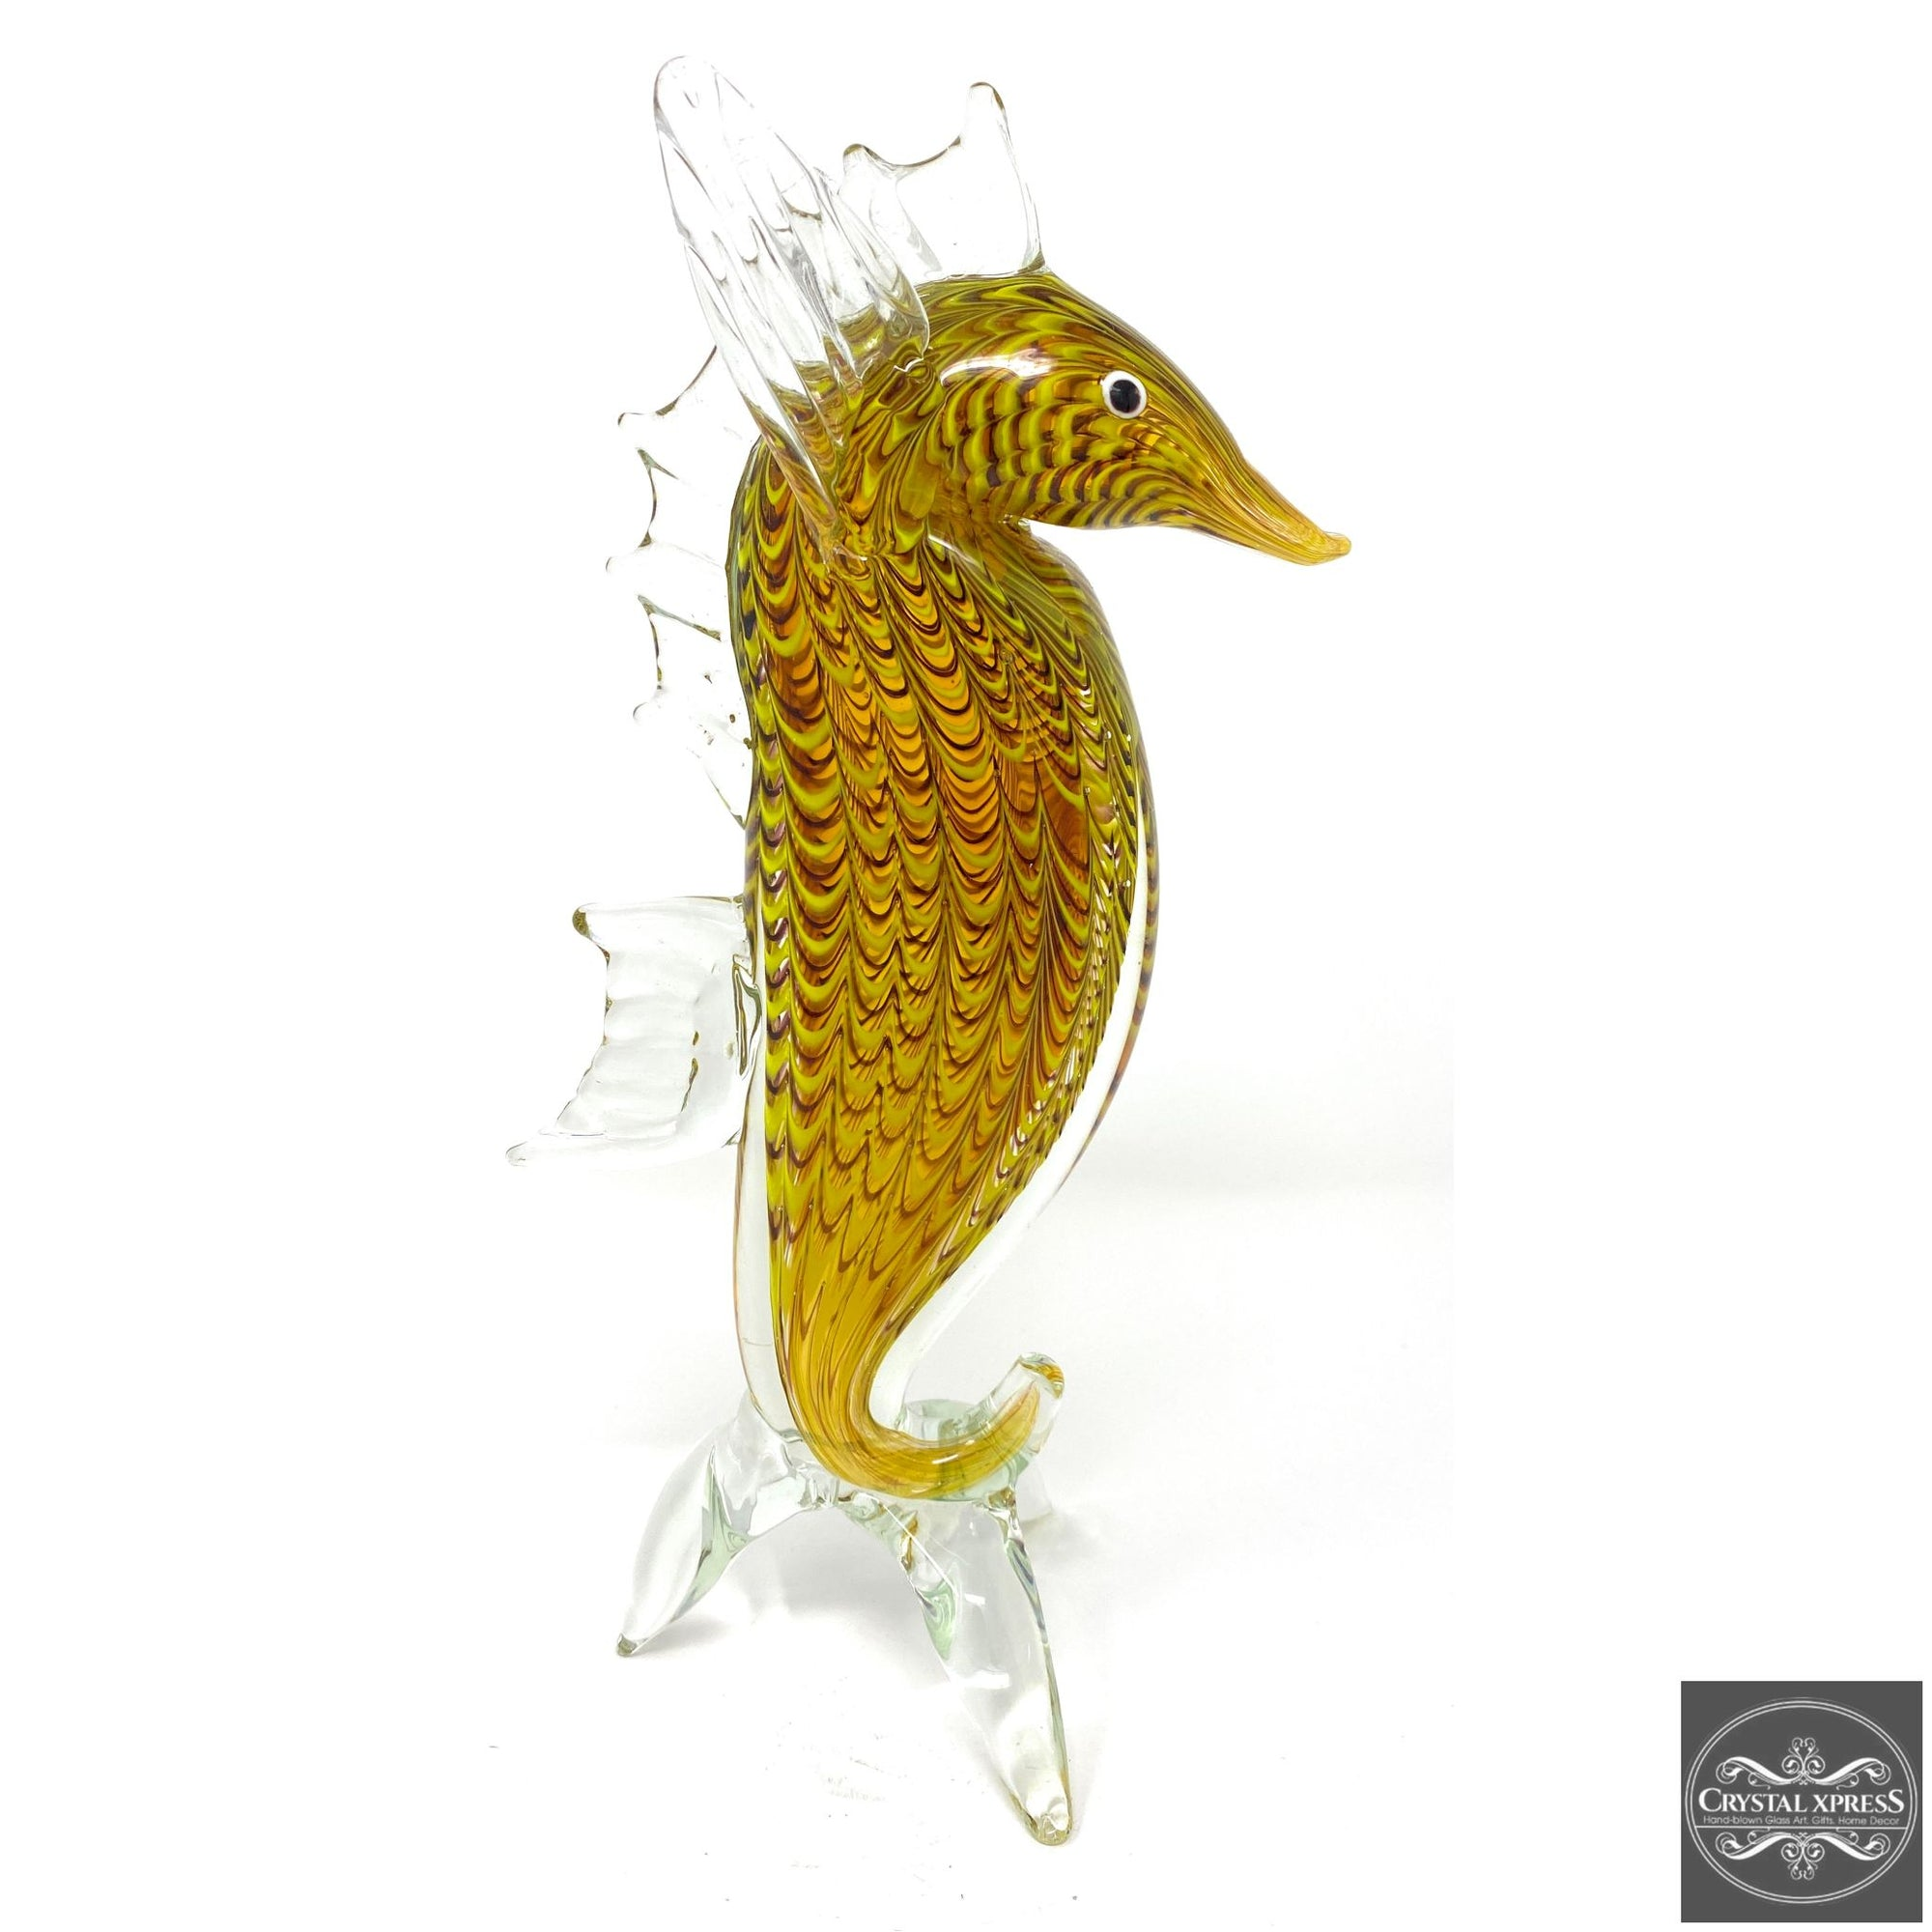 "New 11"" Hand Blown Glass Golden Amber Seahorse Sculpture Figurine Art Home DecorCrystal Xpress"